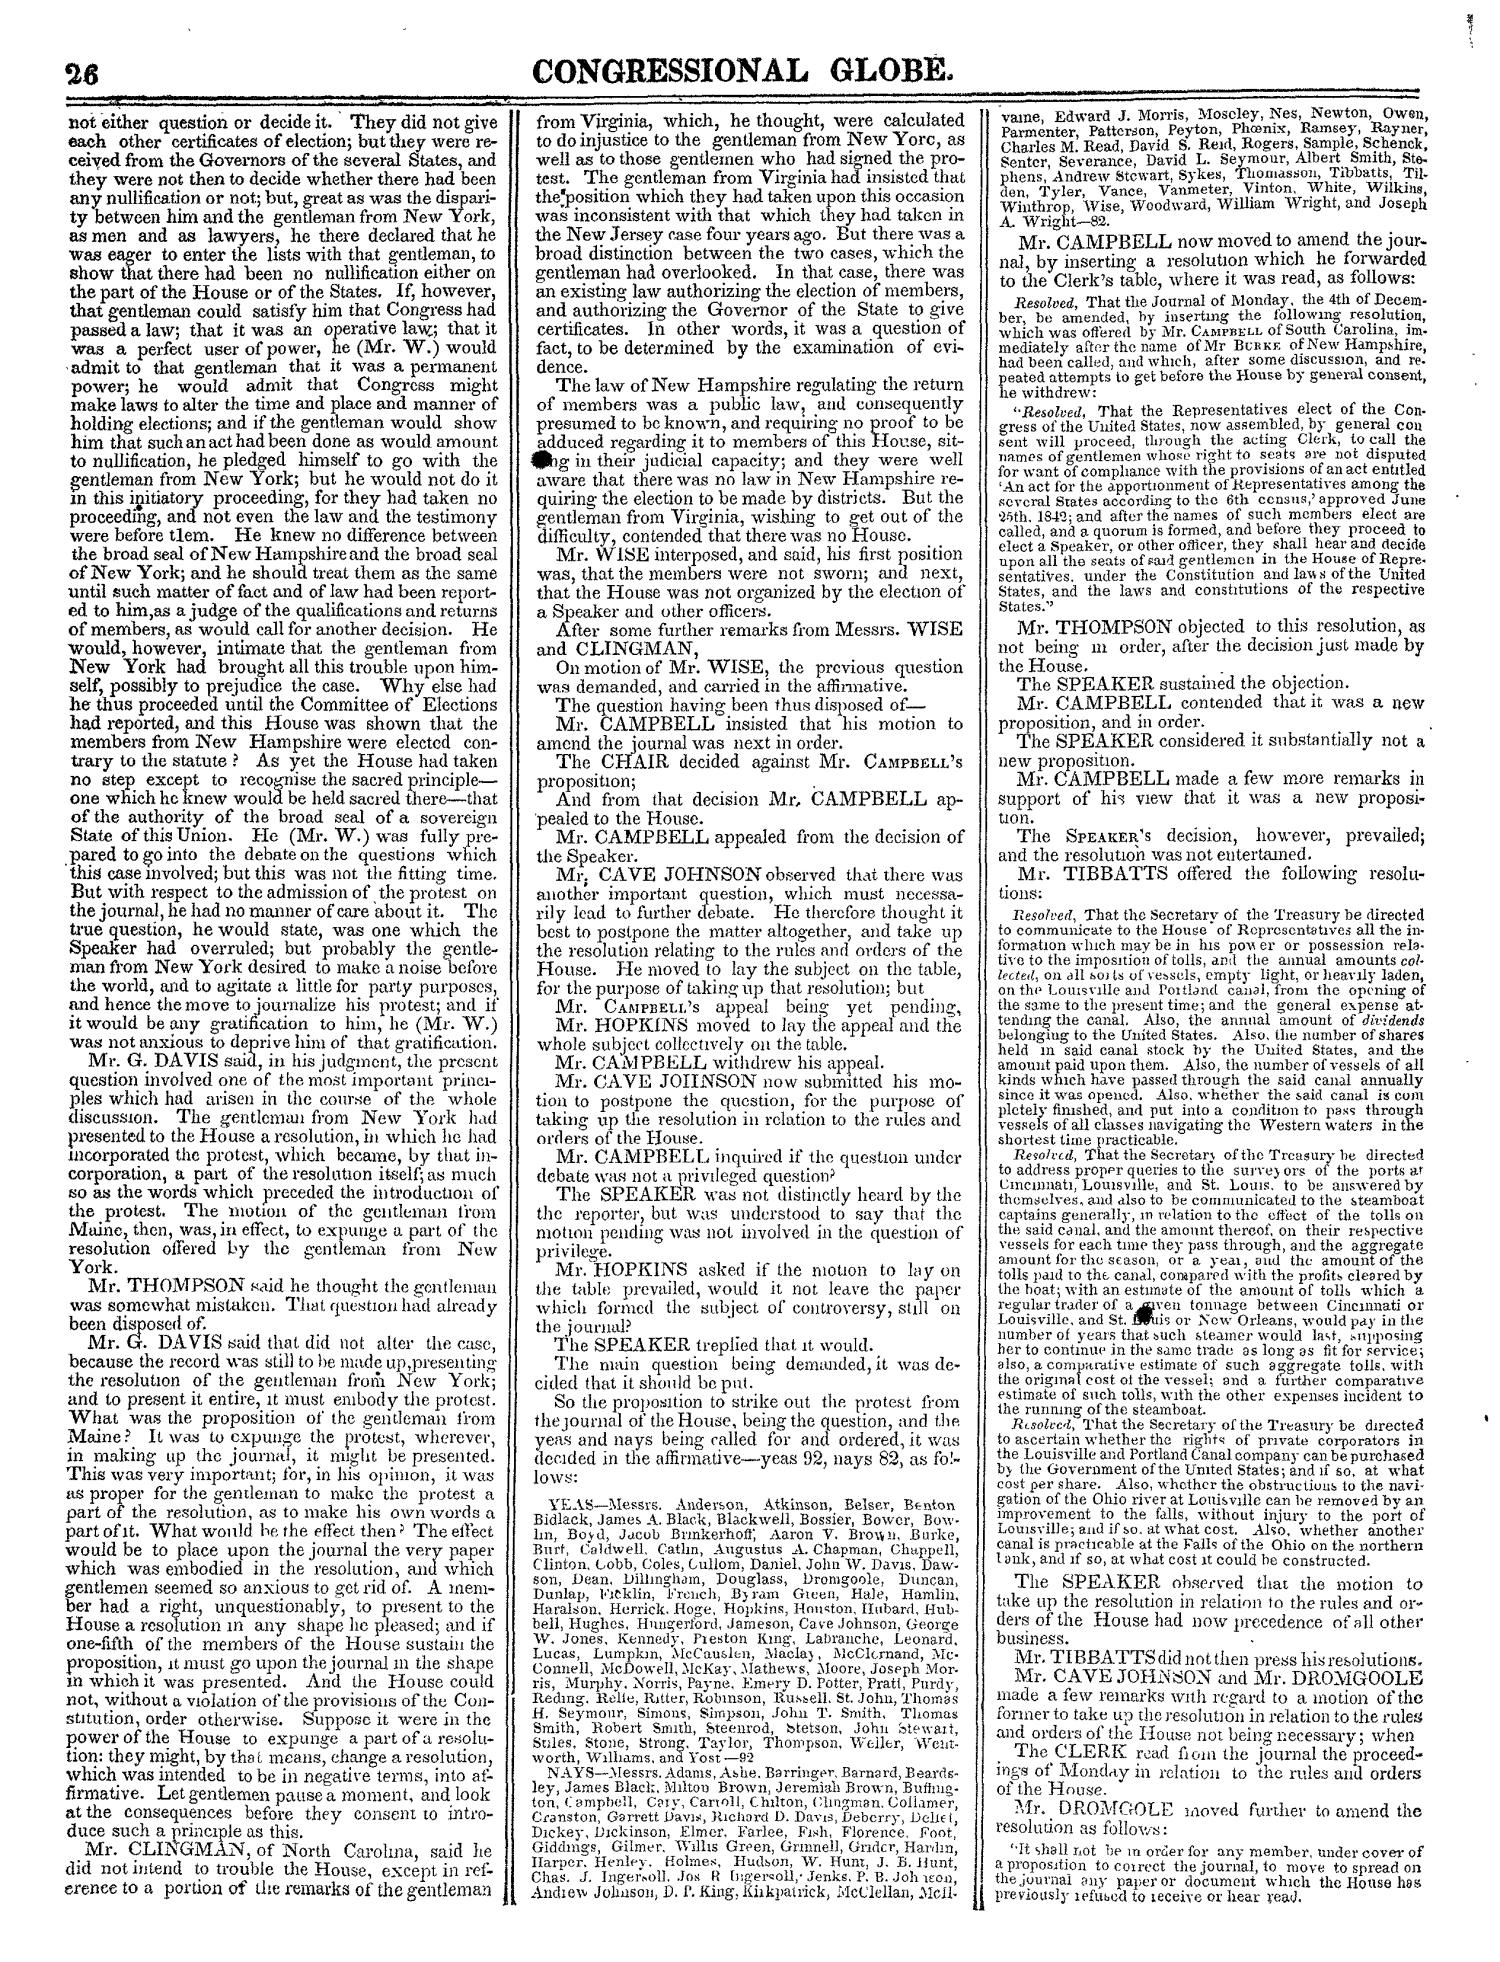 The Congressional Globe, Volume 13, Part 1: Twenty-Eighth Congress, First Session                                                                                                      26